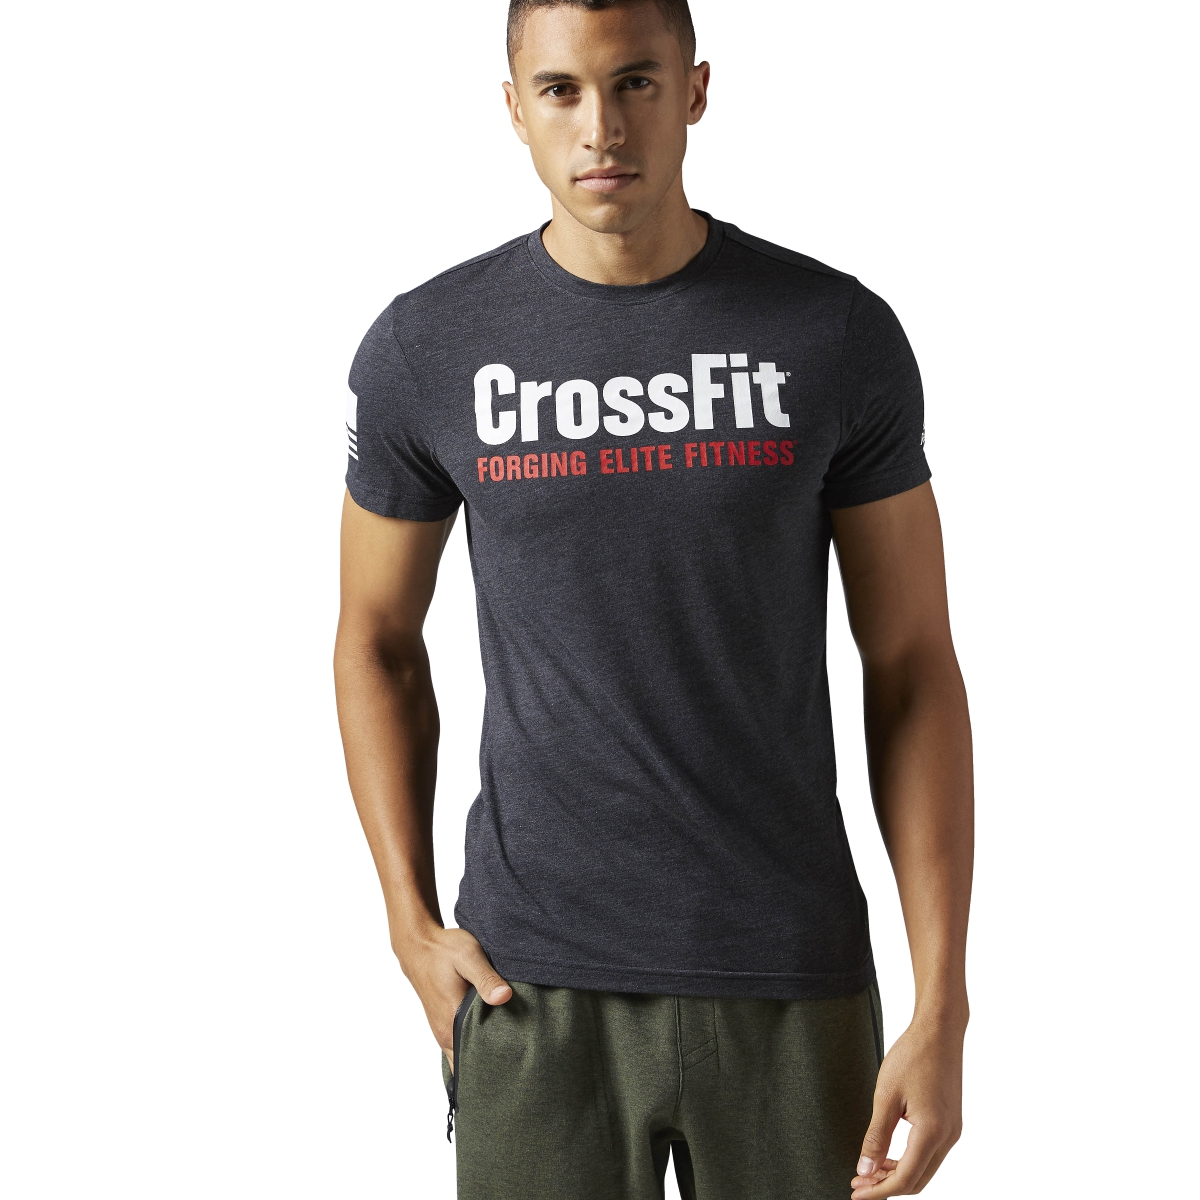 reebok men 39 s crossfit forging elite fitness tee athletic. Black Bedroom Furniture Sets. Home Design Ideas